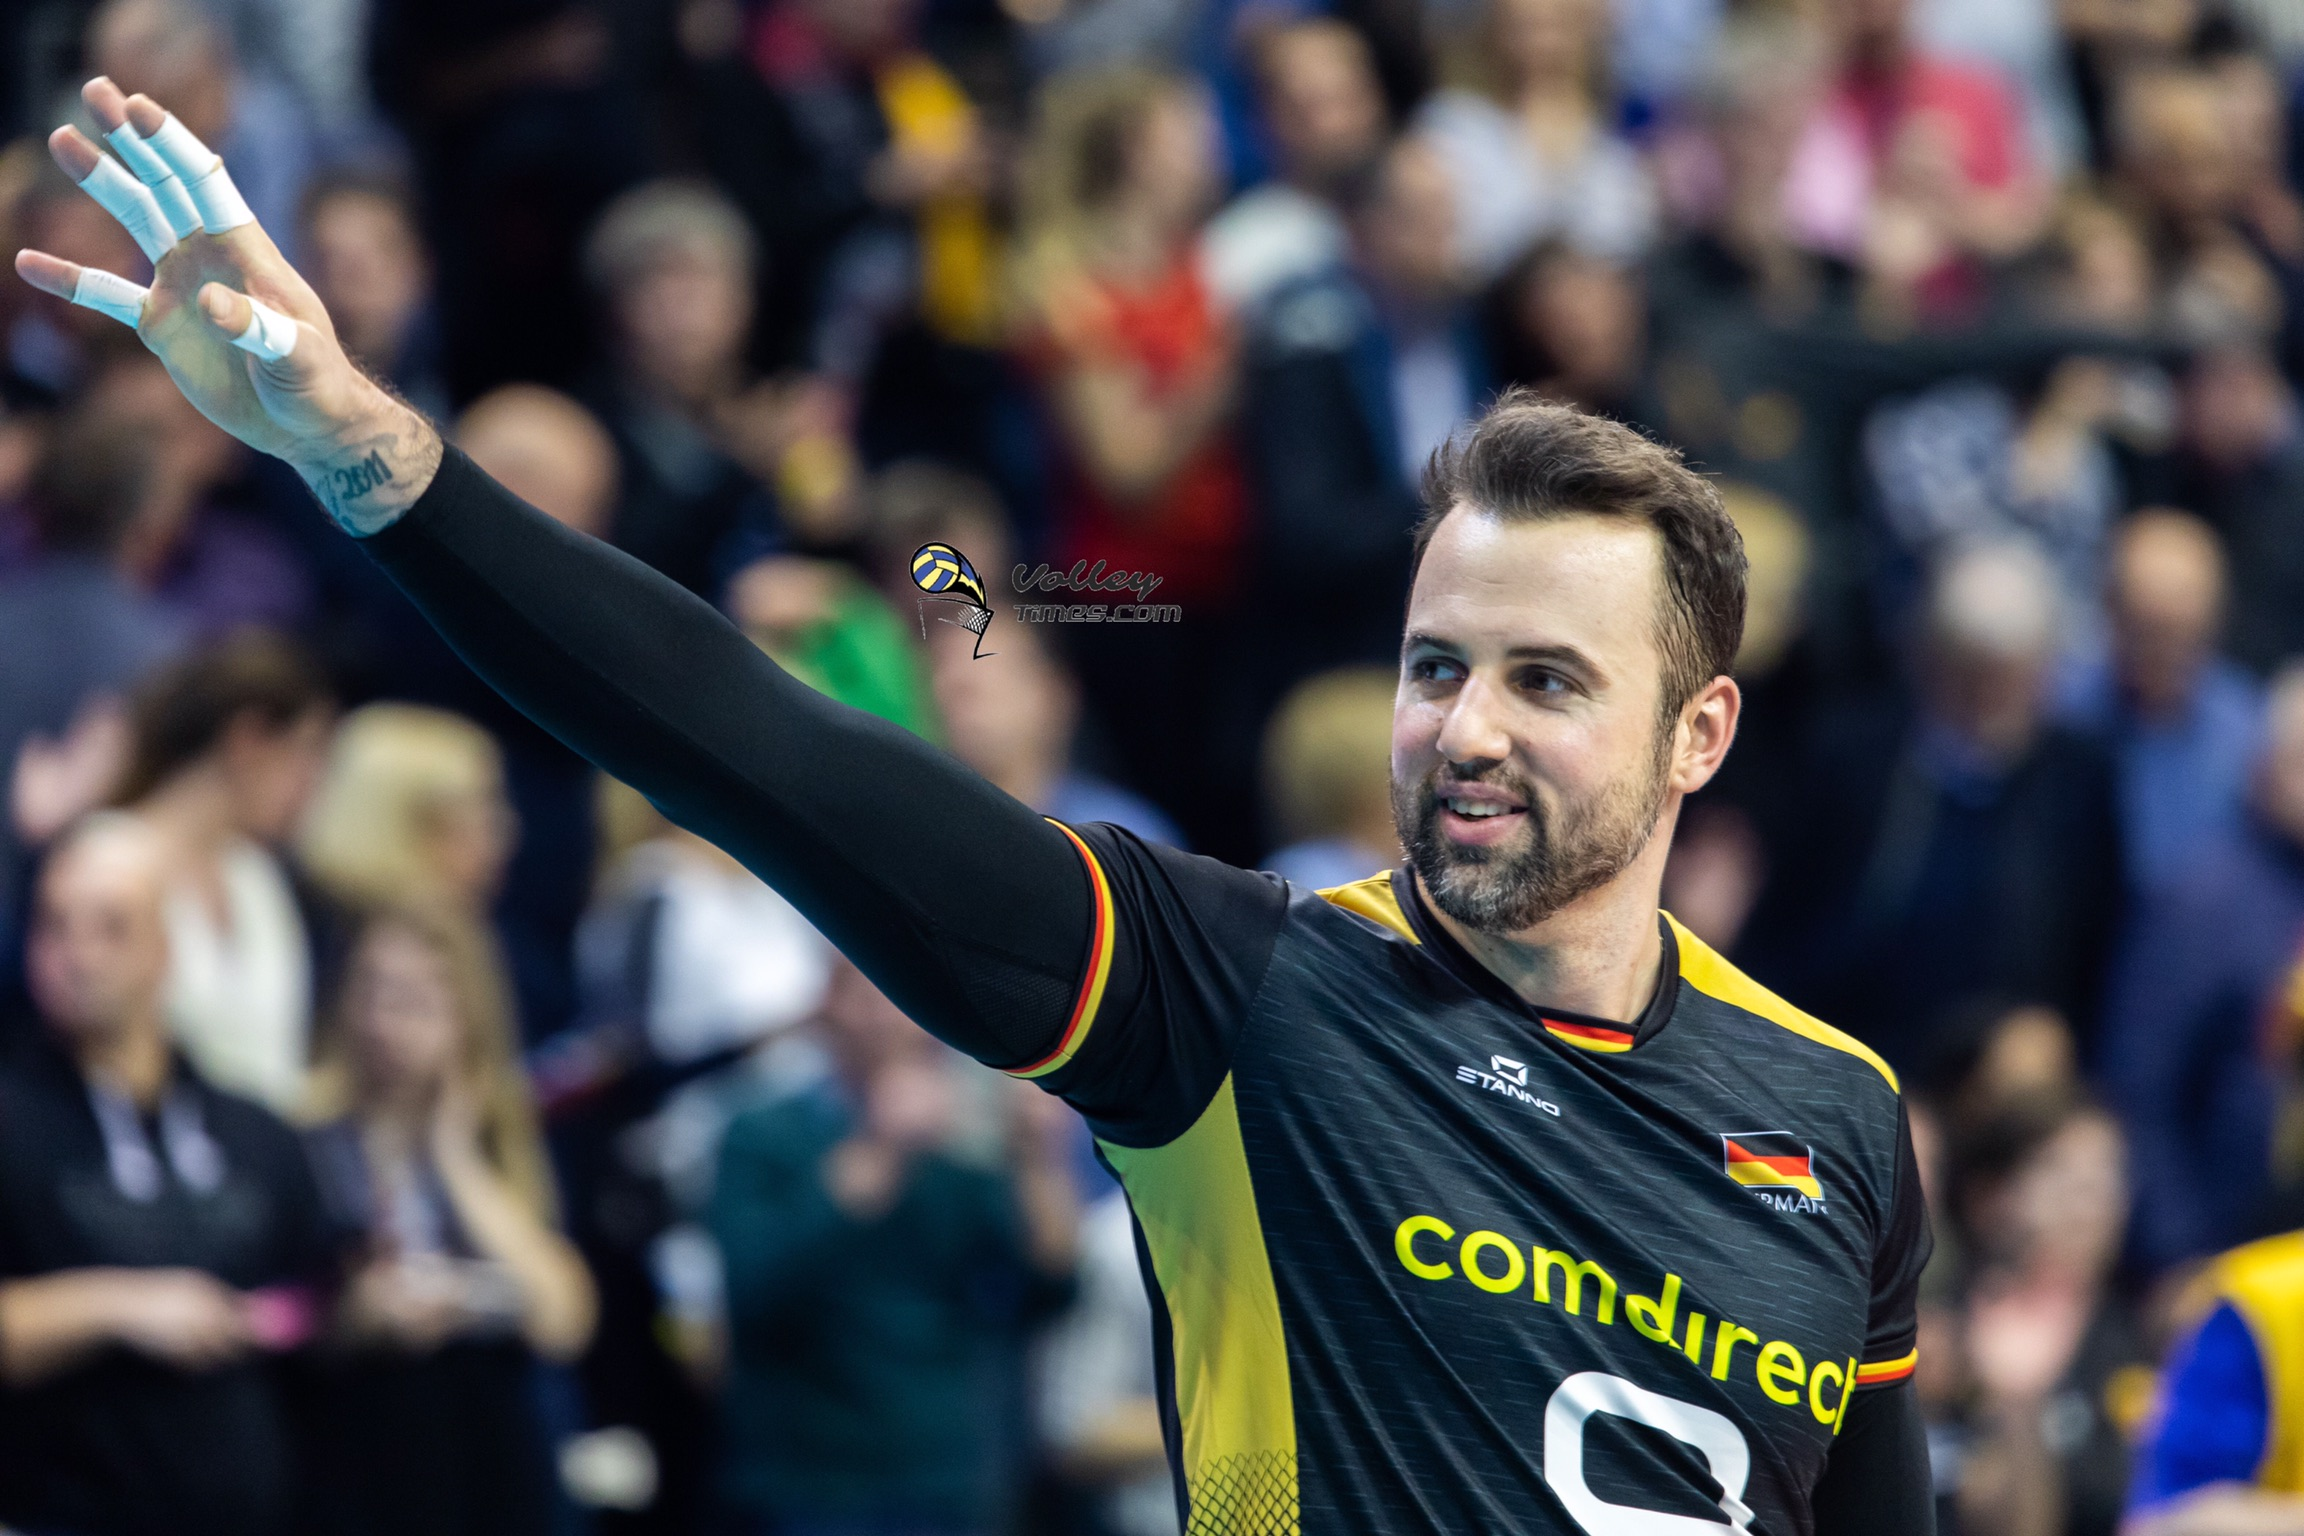 Grozer retired from the German national team